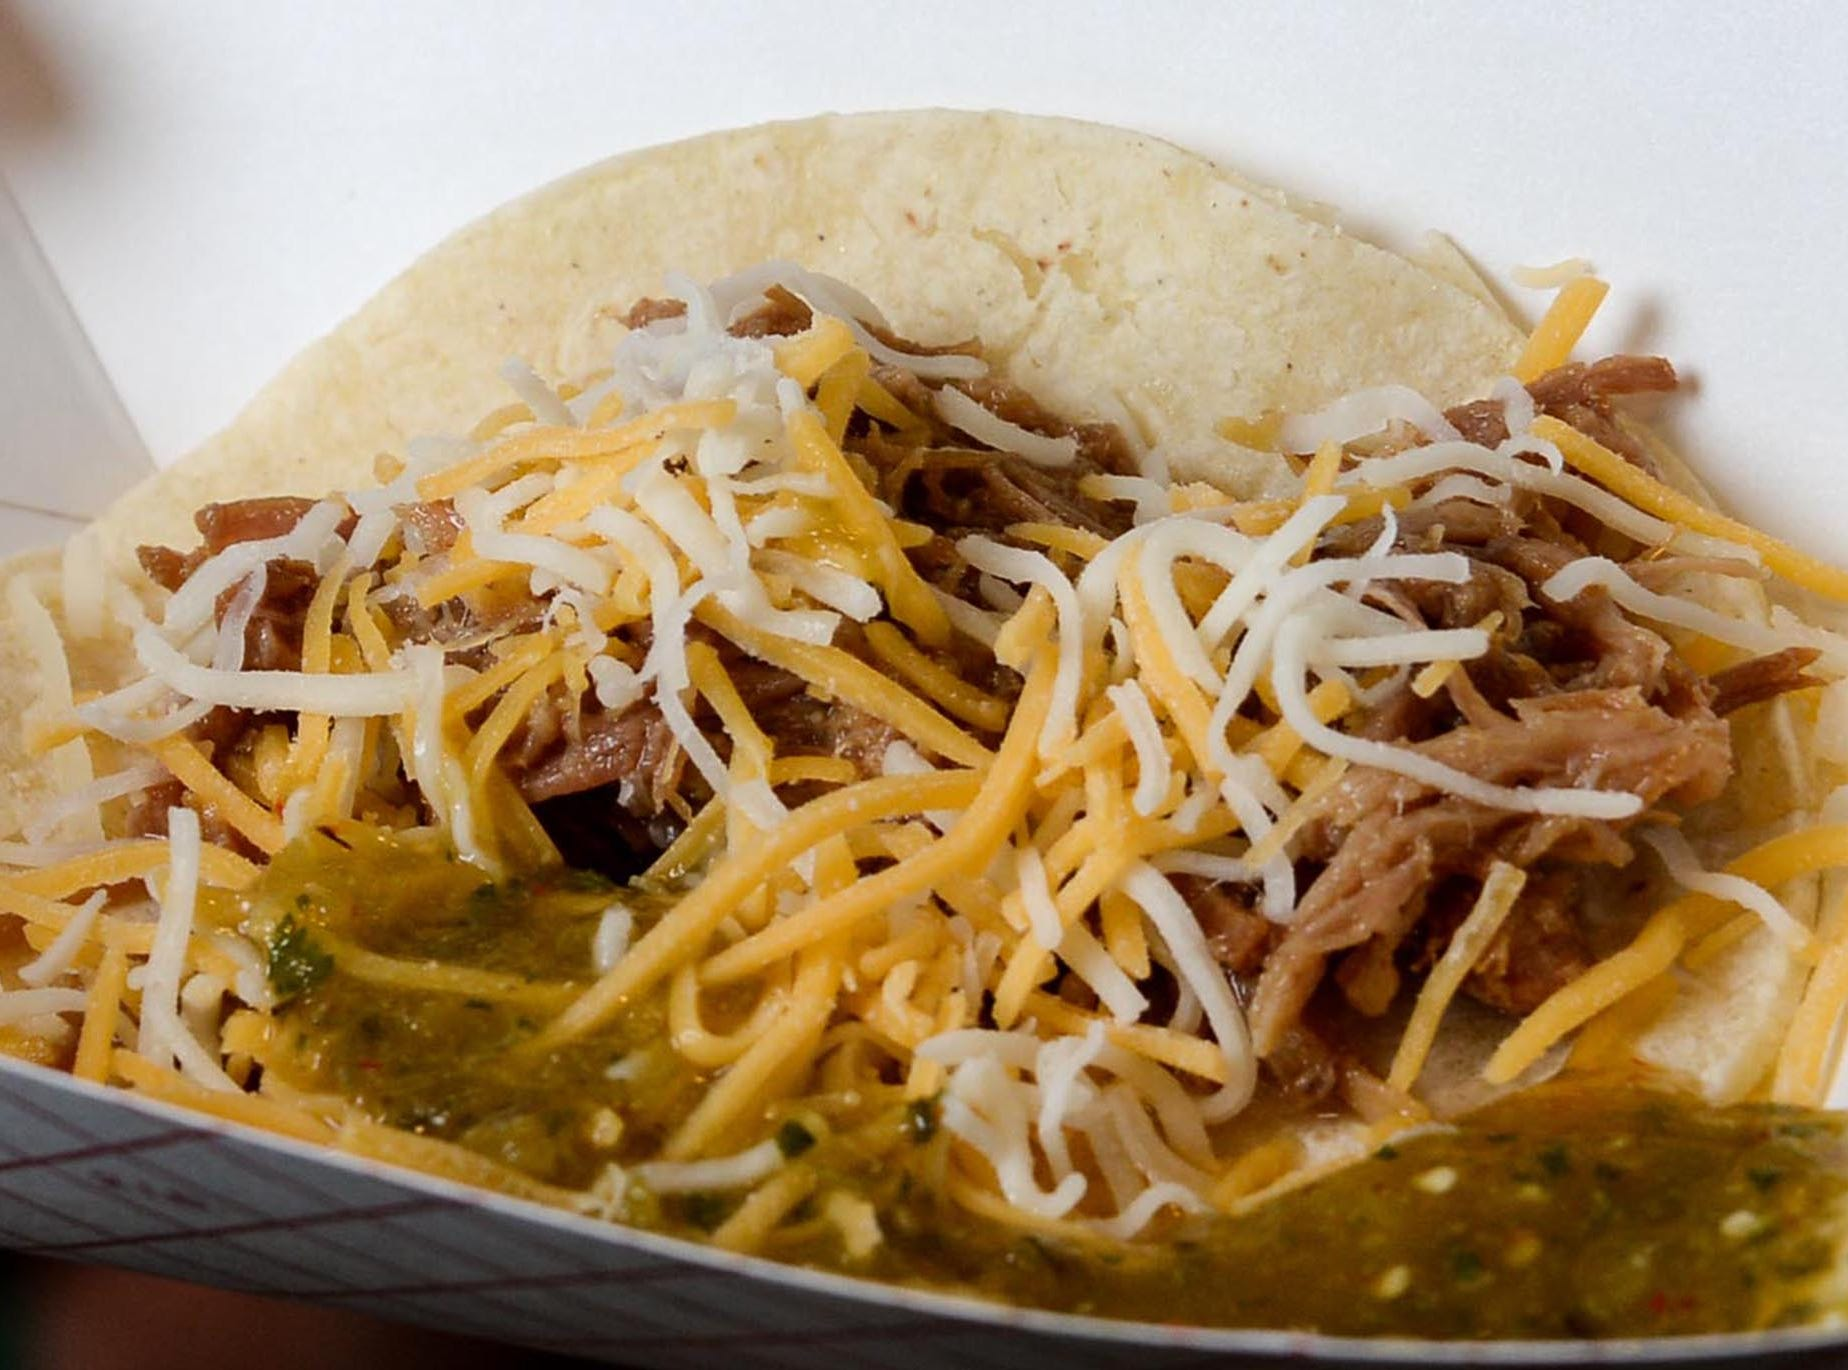 A pork taco with cheese from Taqueria El Taco of Anderson during the Anderson Area YMCA Ralph Hayes Toyota Taste of Anderson at The Bleckley Station Tuesday. Proceeds from the Aloha theme party benefit programs and services of the Anderson Area YMCA.